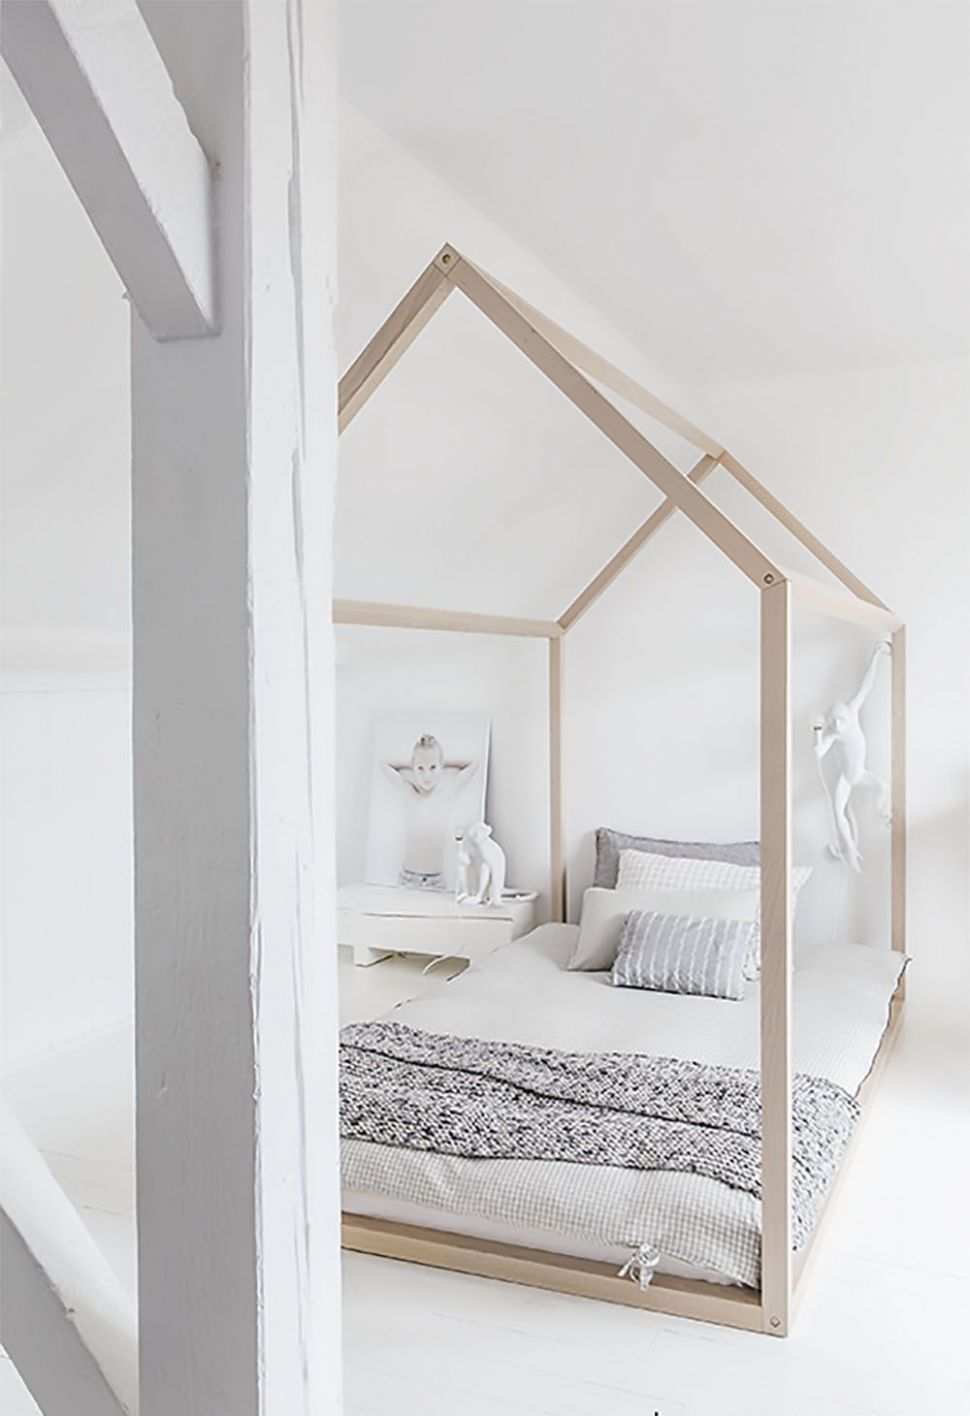 FRIDAY INSPIRATION: HOUSE FRAME BEDS! — WINTER DAISY interiors for ..